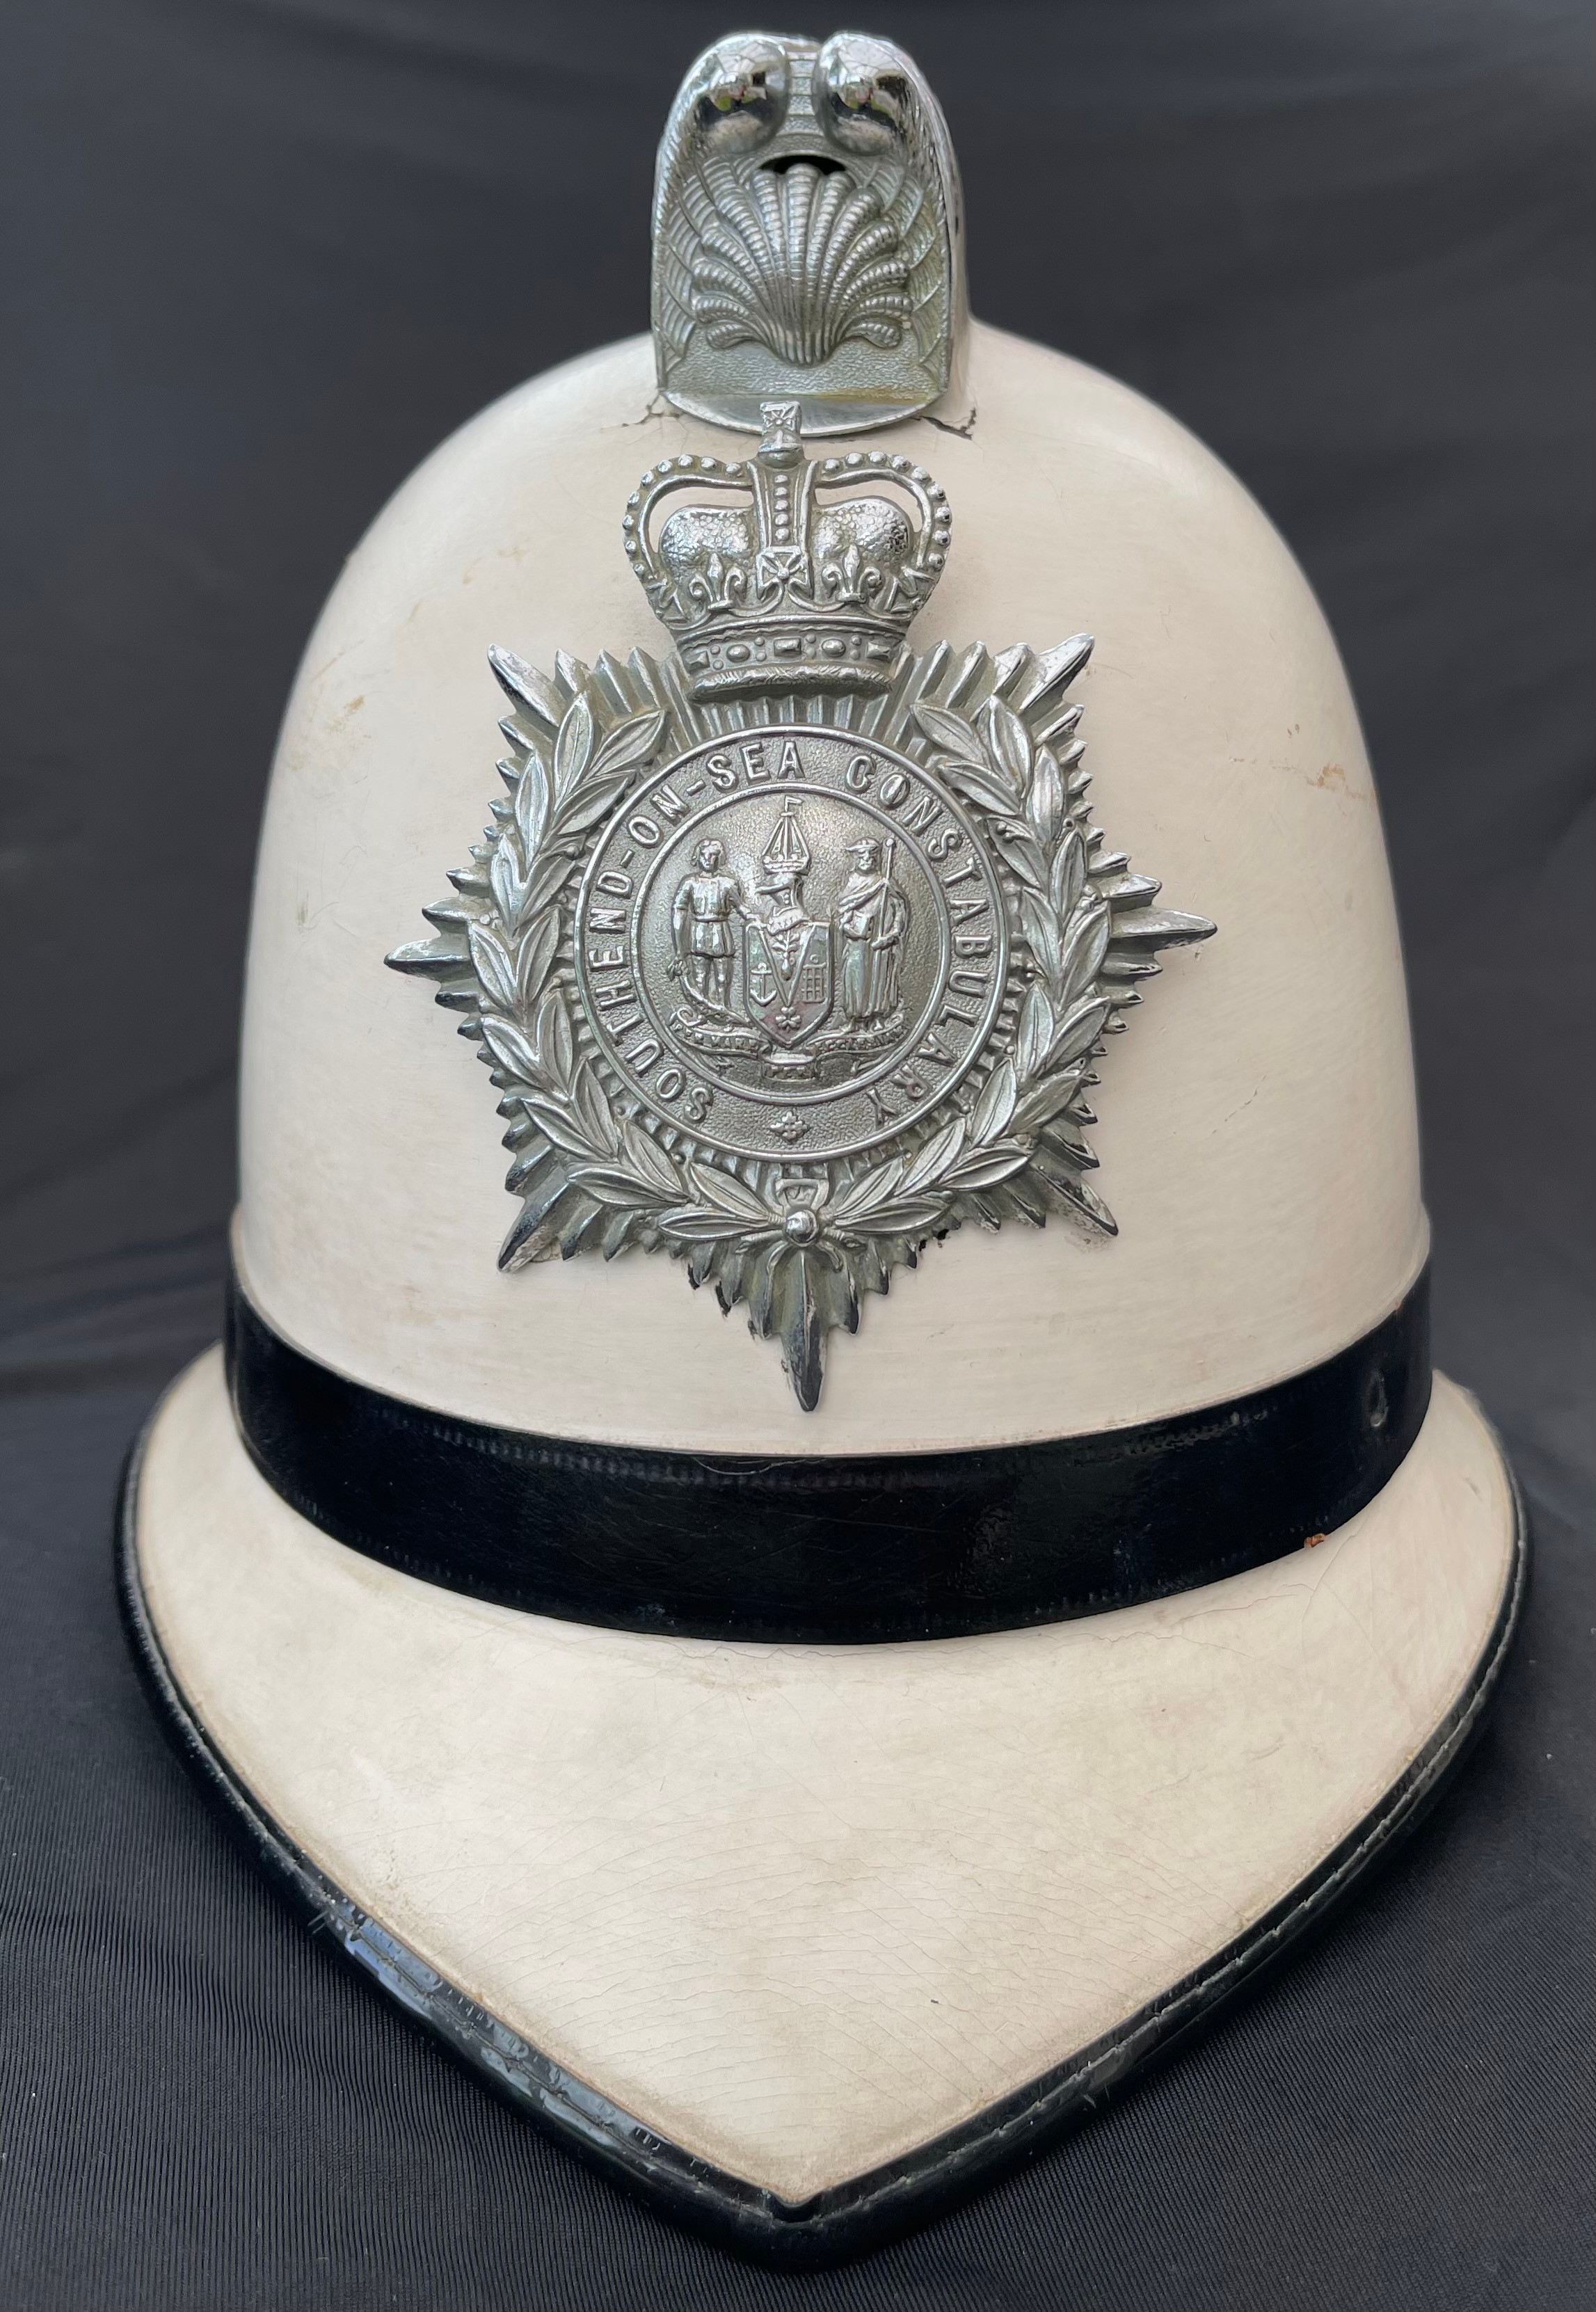 Southend on Sea Constabulary Summer White Police Helmet complete with Queens Crown Helmet Plate.